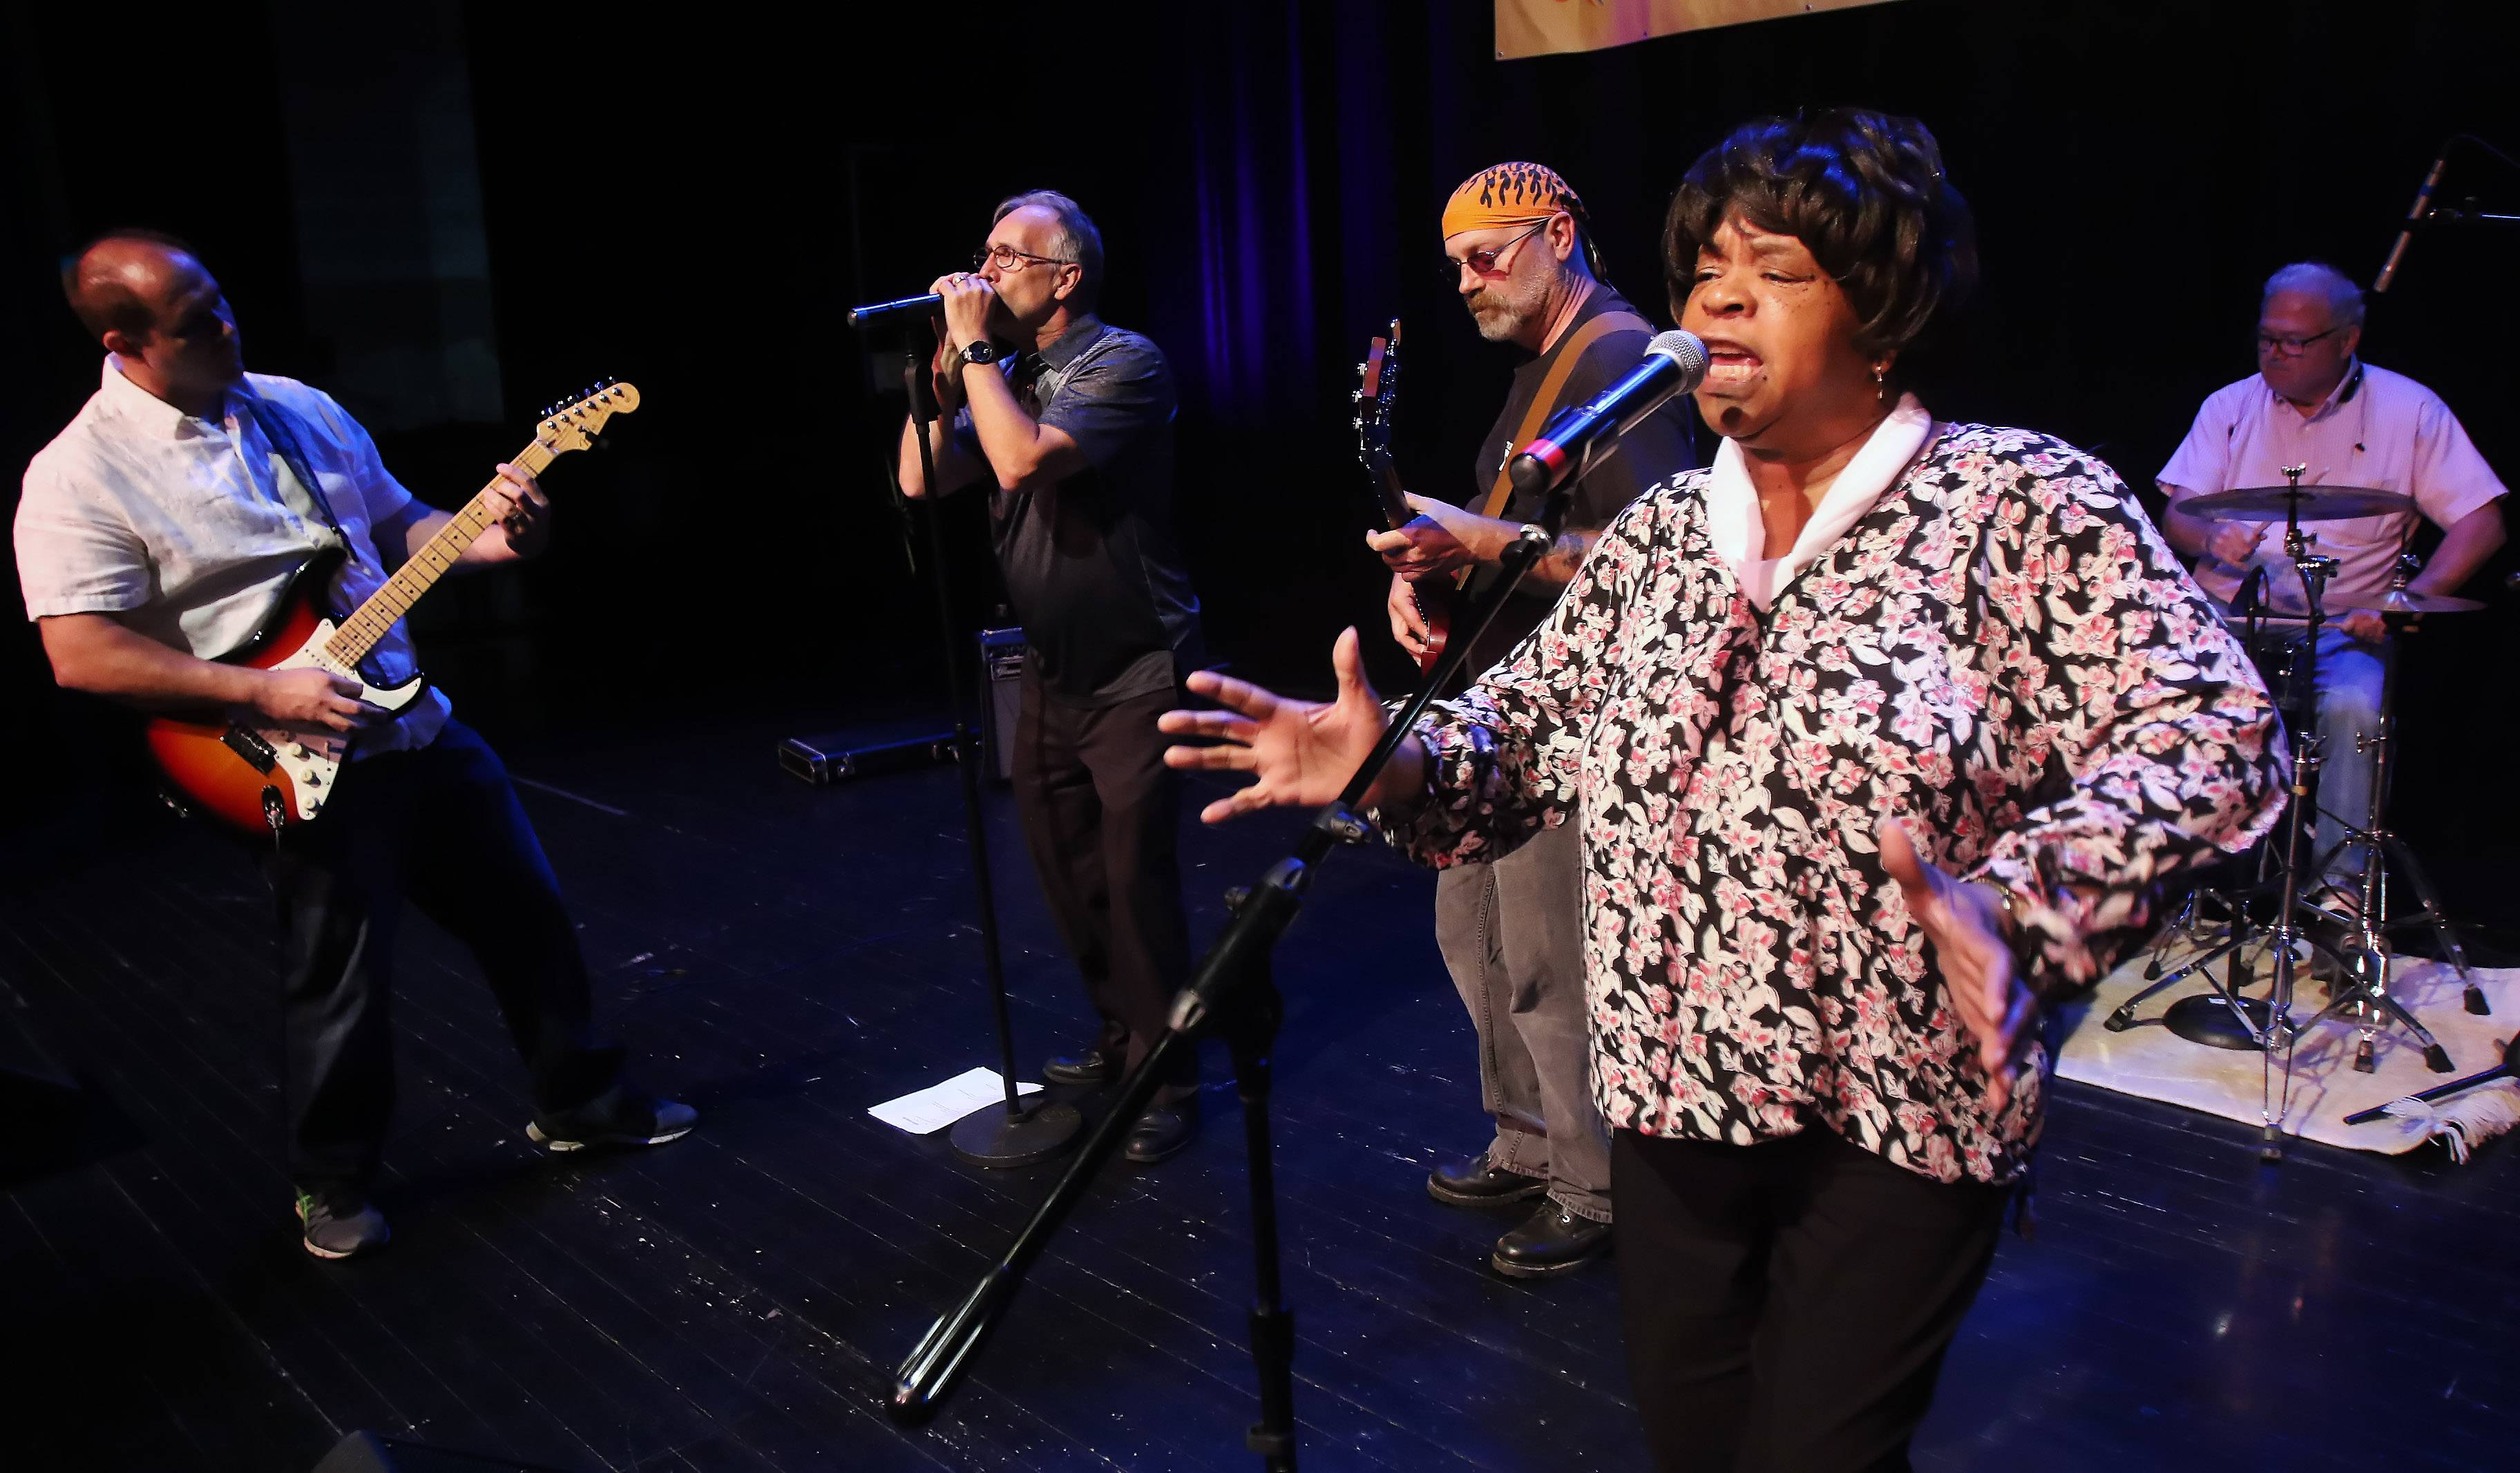 The Annie Young Gospel Blues Band performed as a top 15 finalist of Suburban Chicago's Got Talent at the Prairie Center for the Arts in Schaumburg.